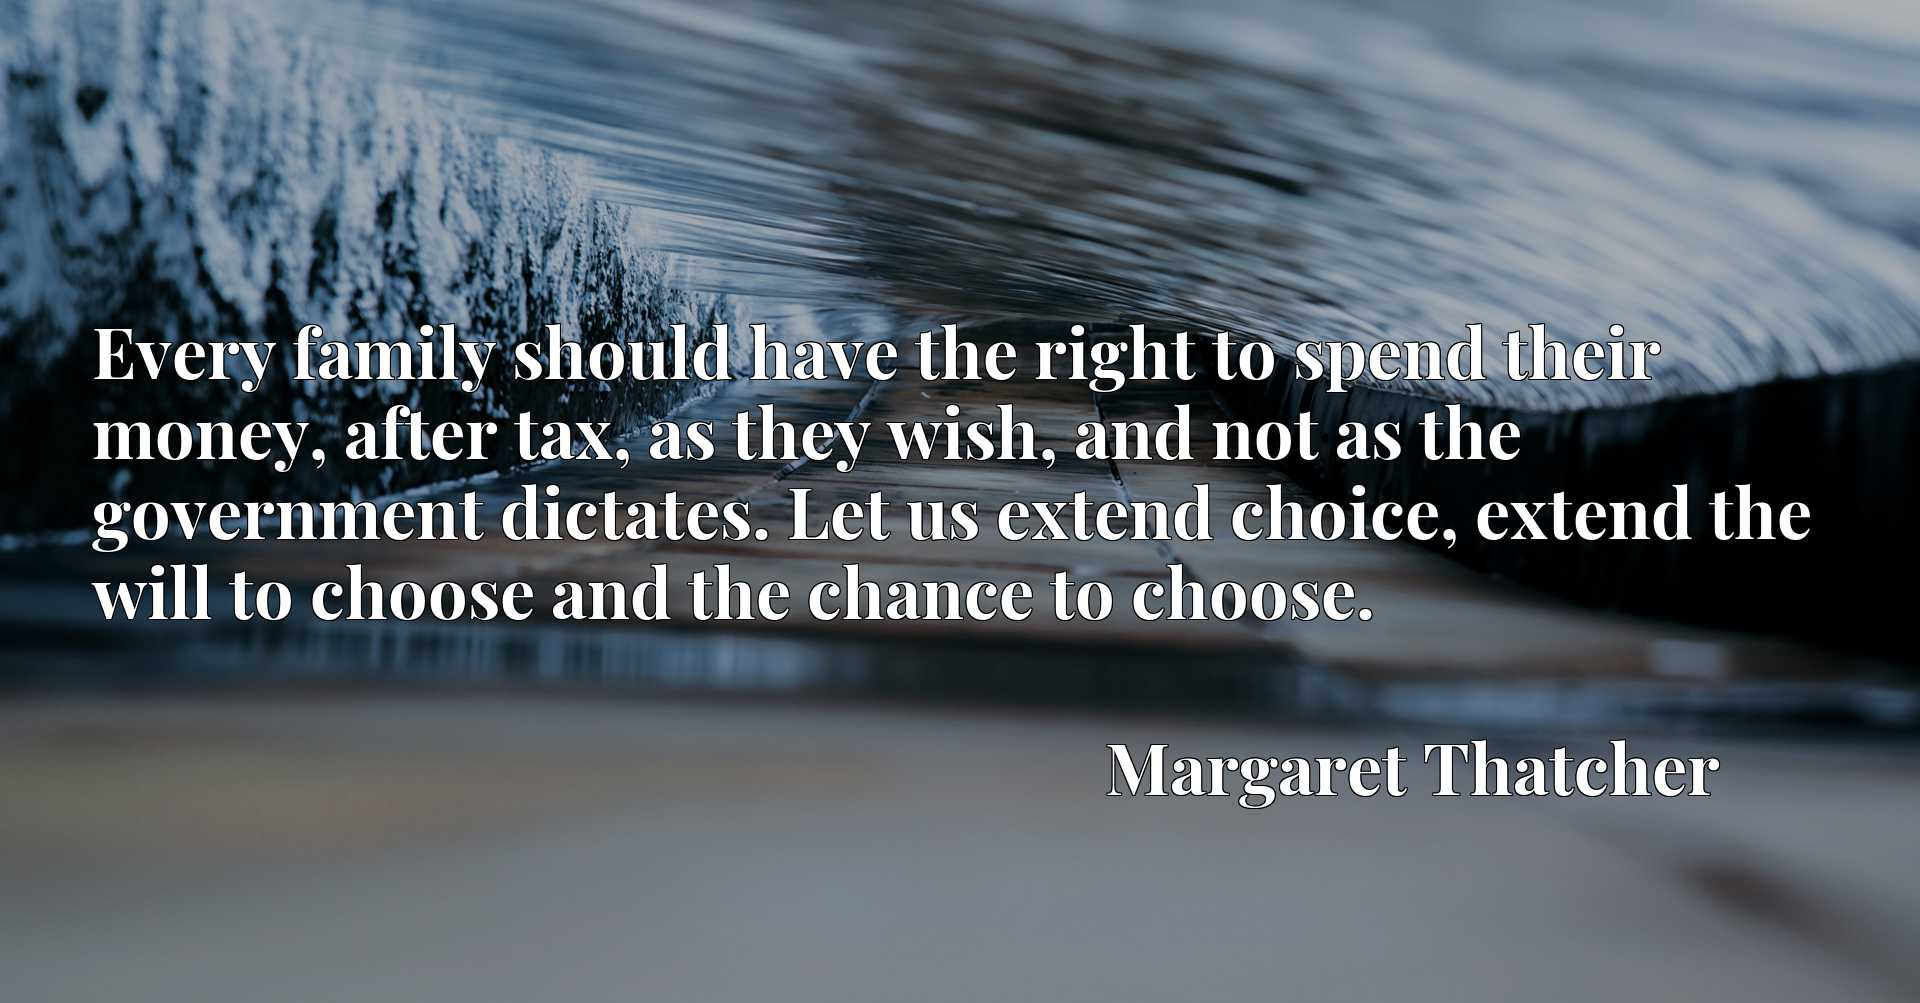 Every family should have the right to spend their money, after tax, as they wish, and not as the government dictates. Let us extend choice, extend the will to choose and the chance to choose.